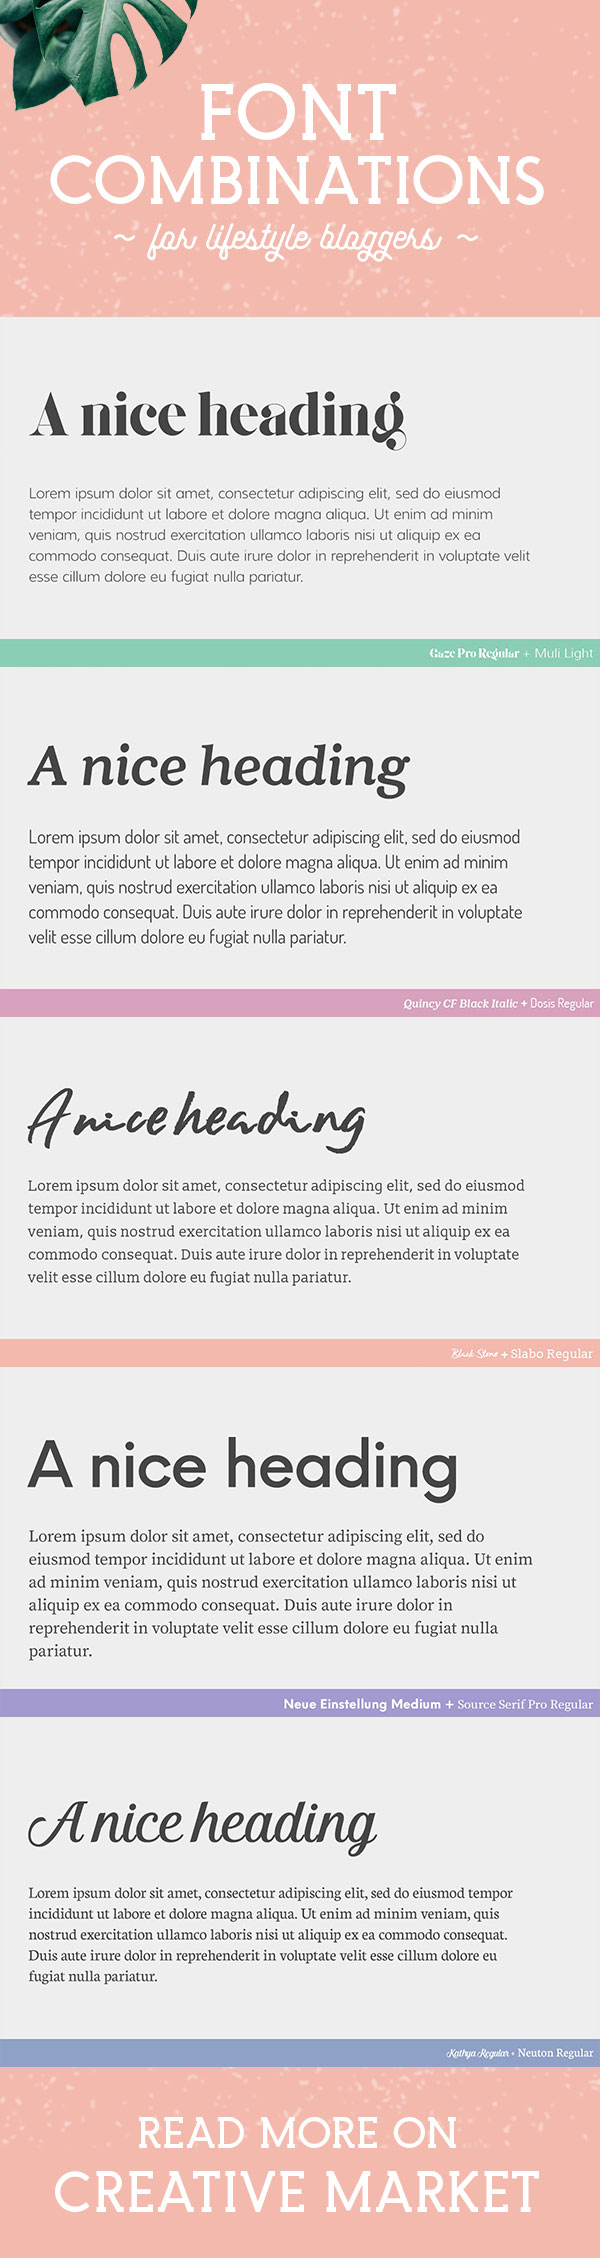 fonts-lifestyle-bloggers-pin-1